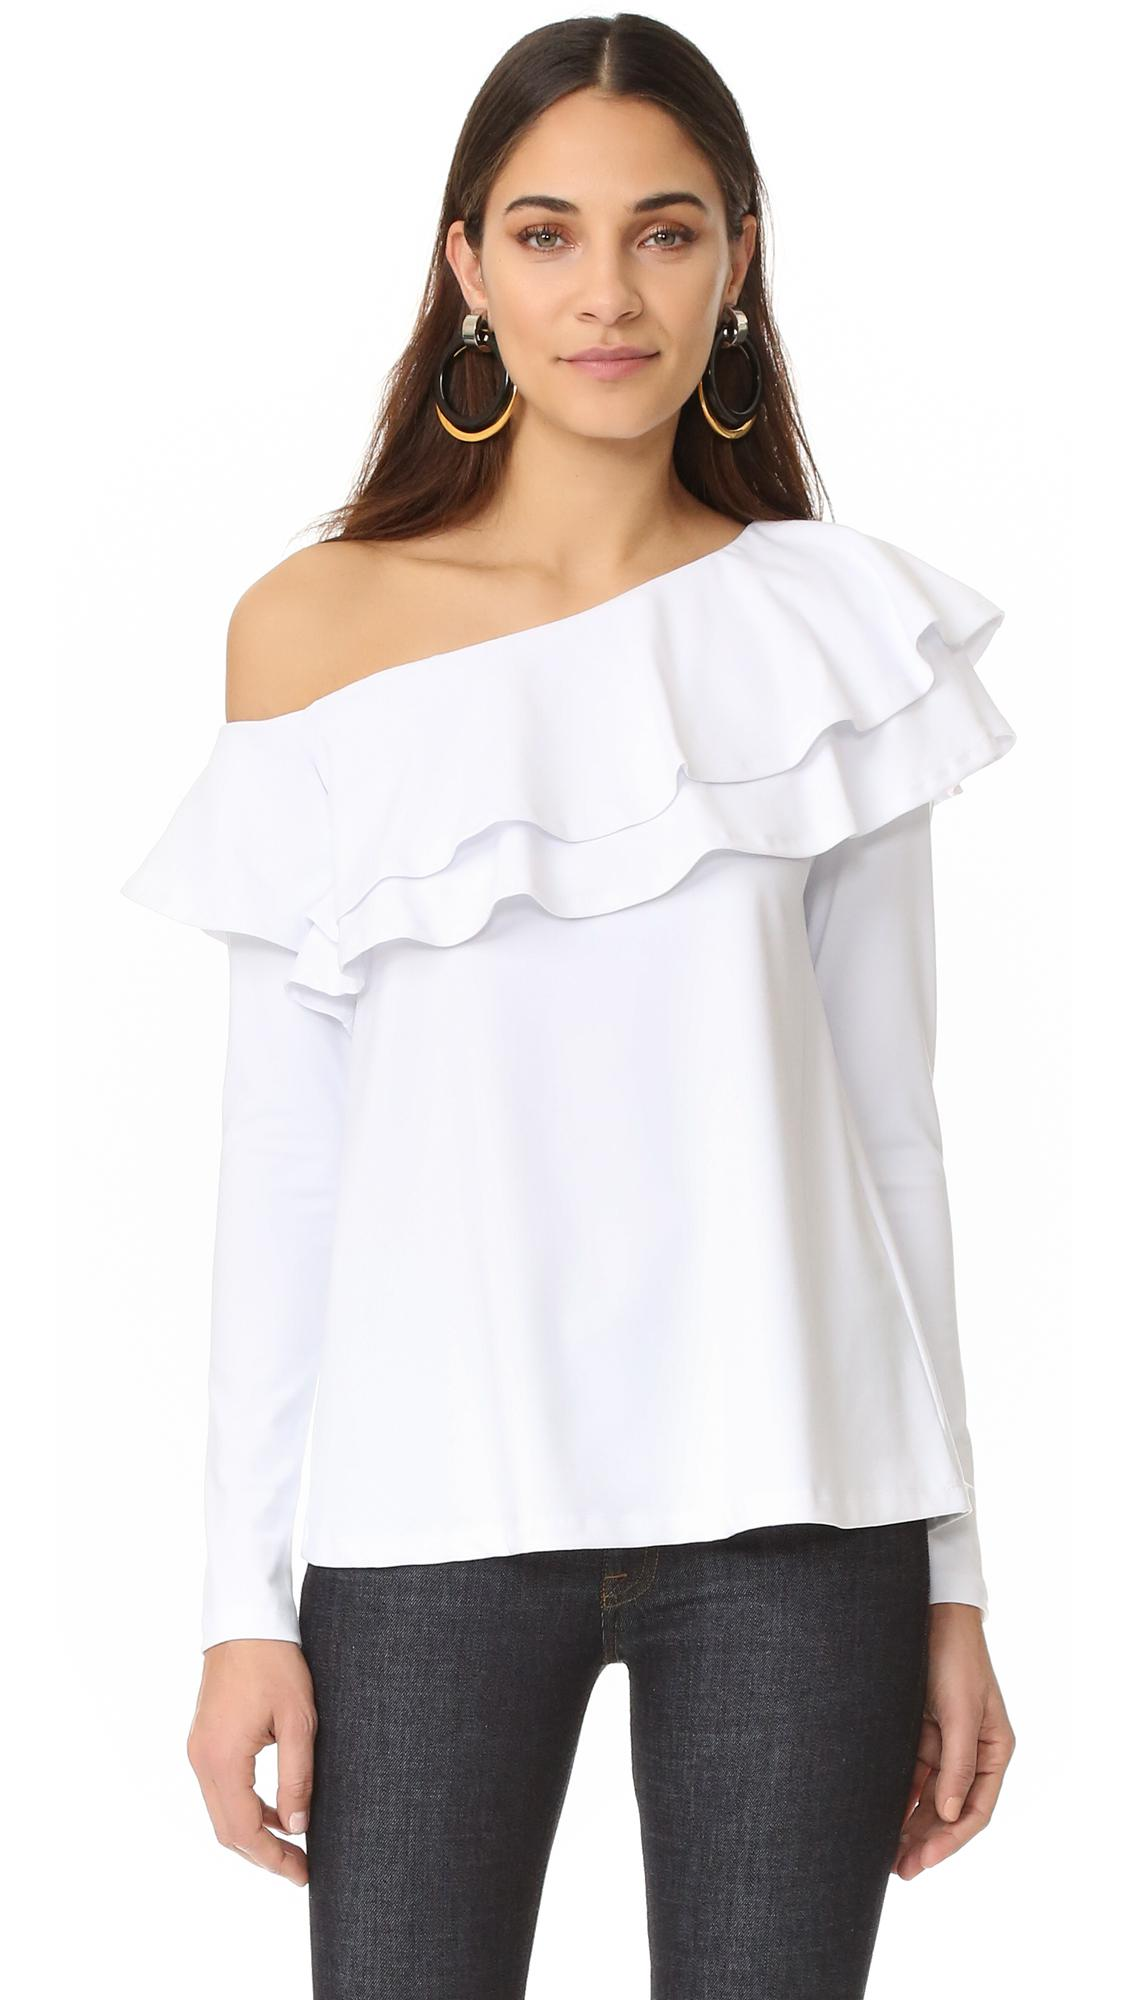 bb8777dd7f8f0 Lyst - Susana Monaco One Shoulder Top in White